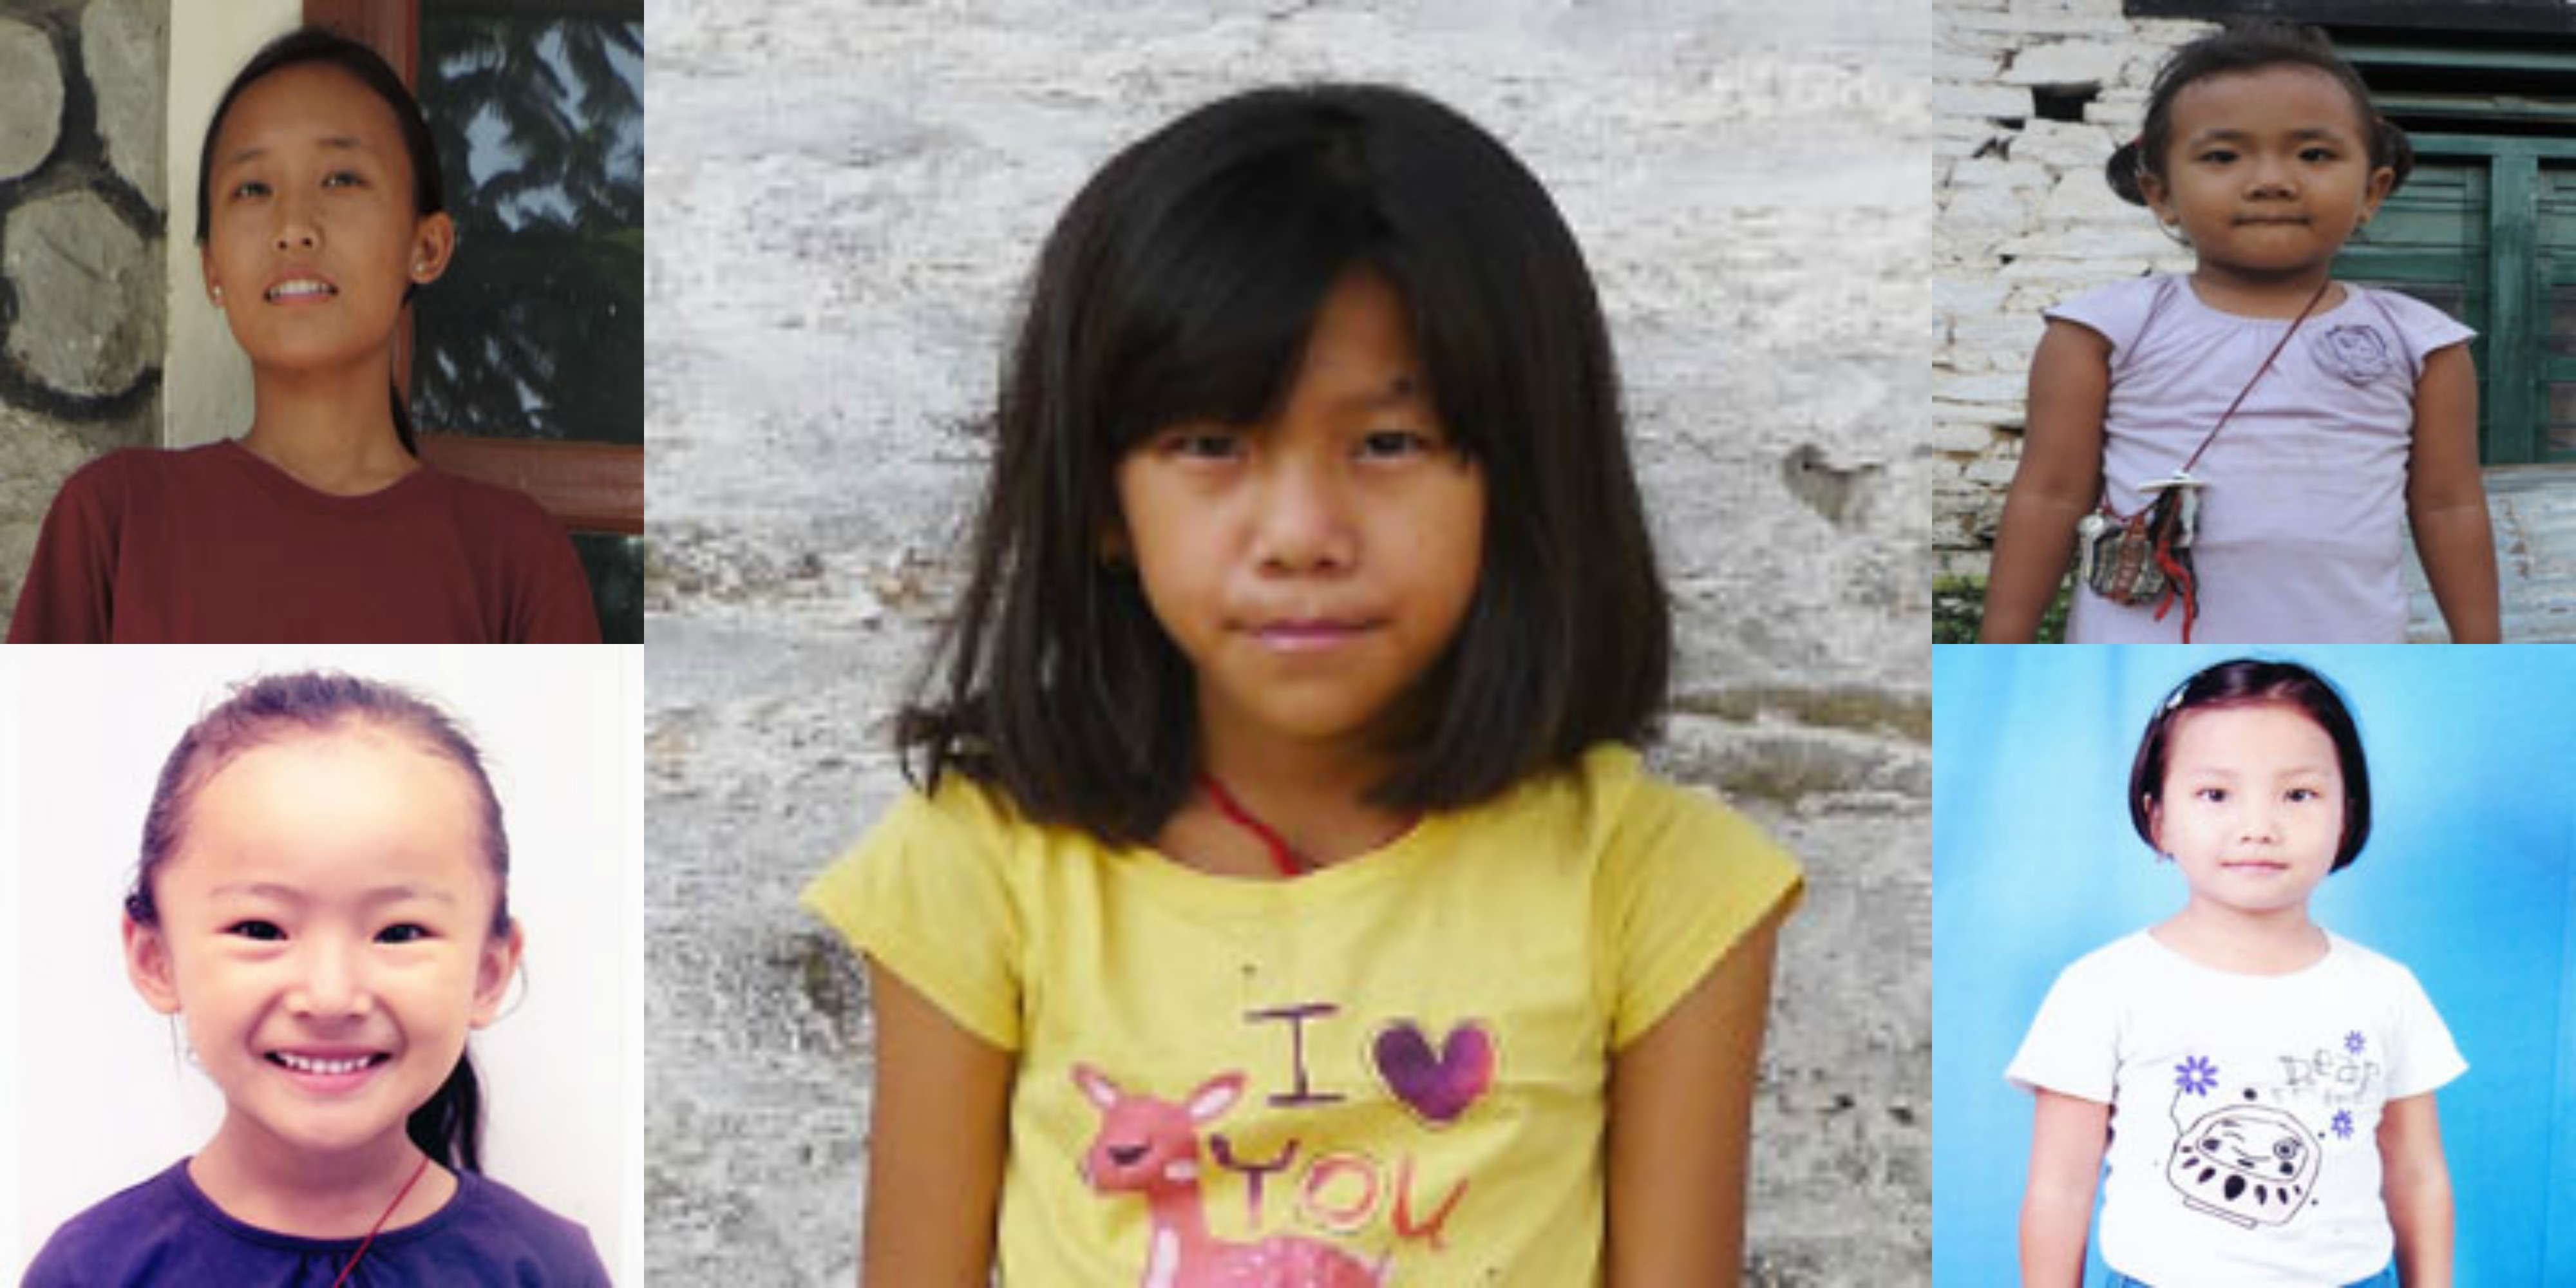 Can you help these Tibetan girls with life changing sponsorship?